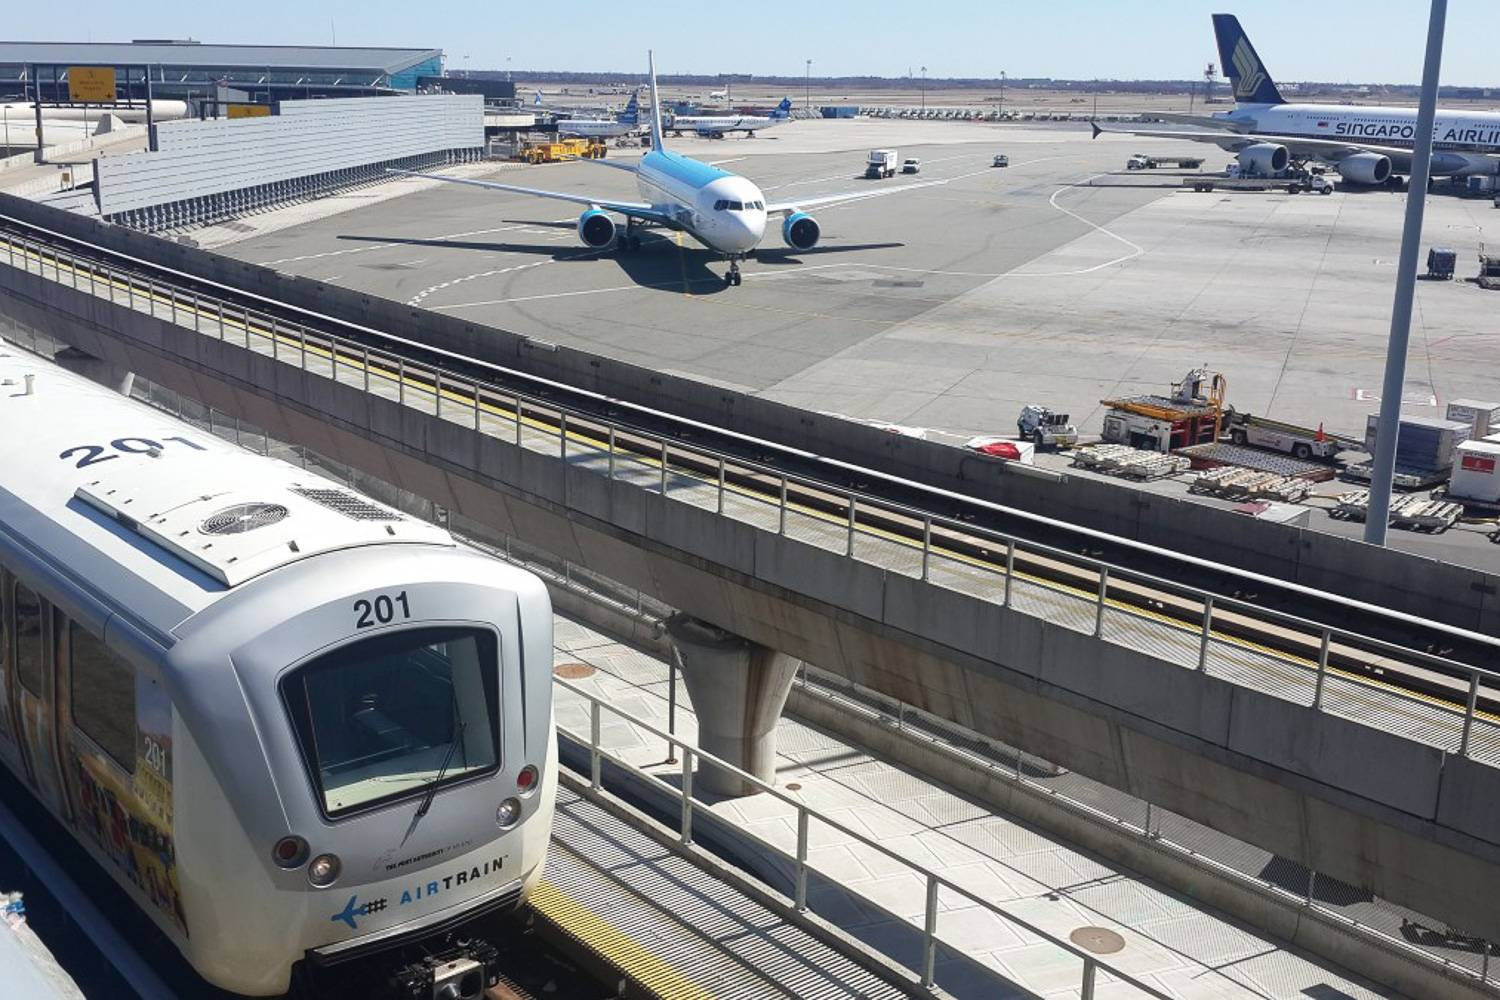 Image of JFK AirTrain traveling between terminals with airplanes on the tarmac in the background.